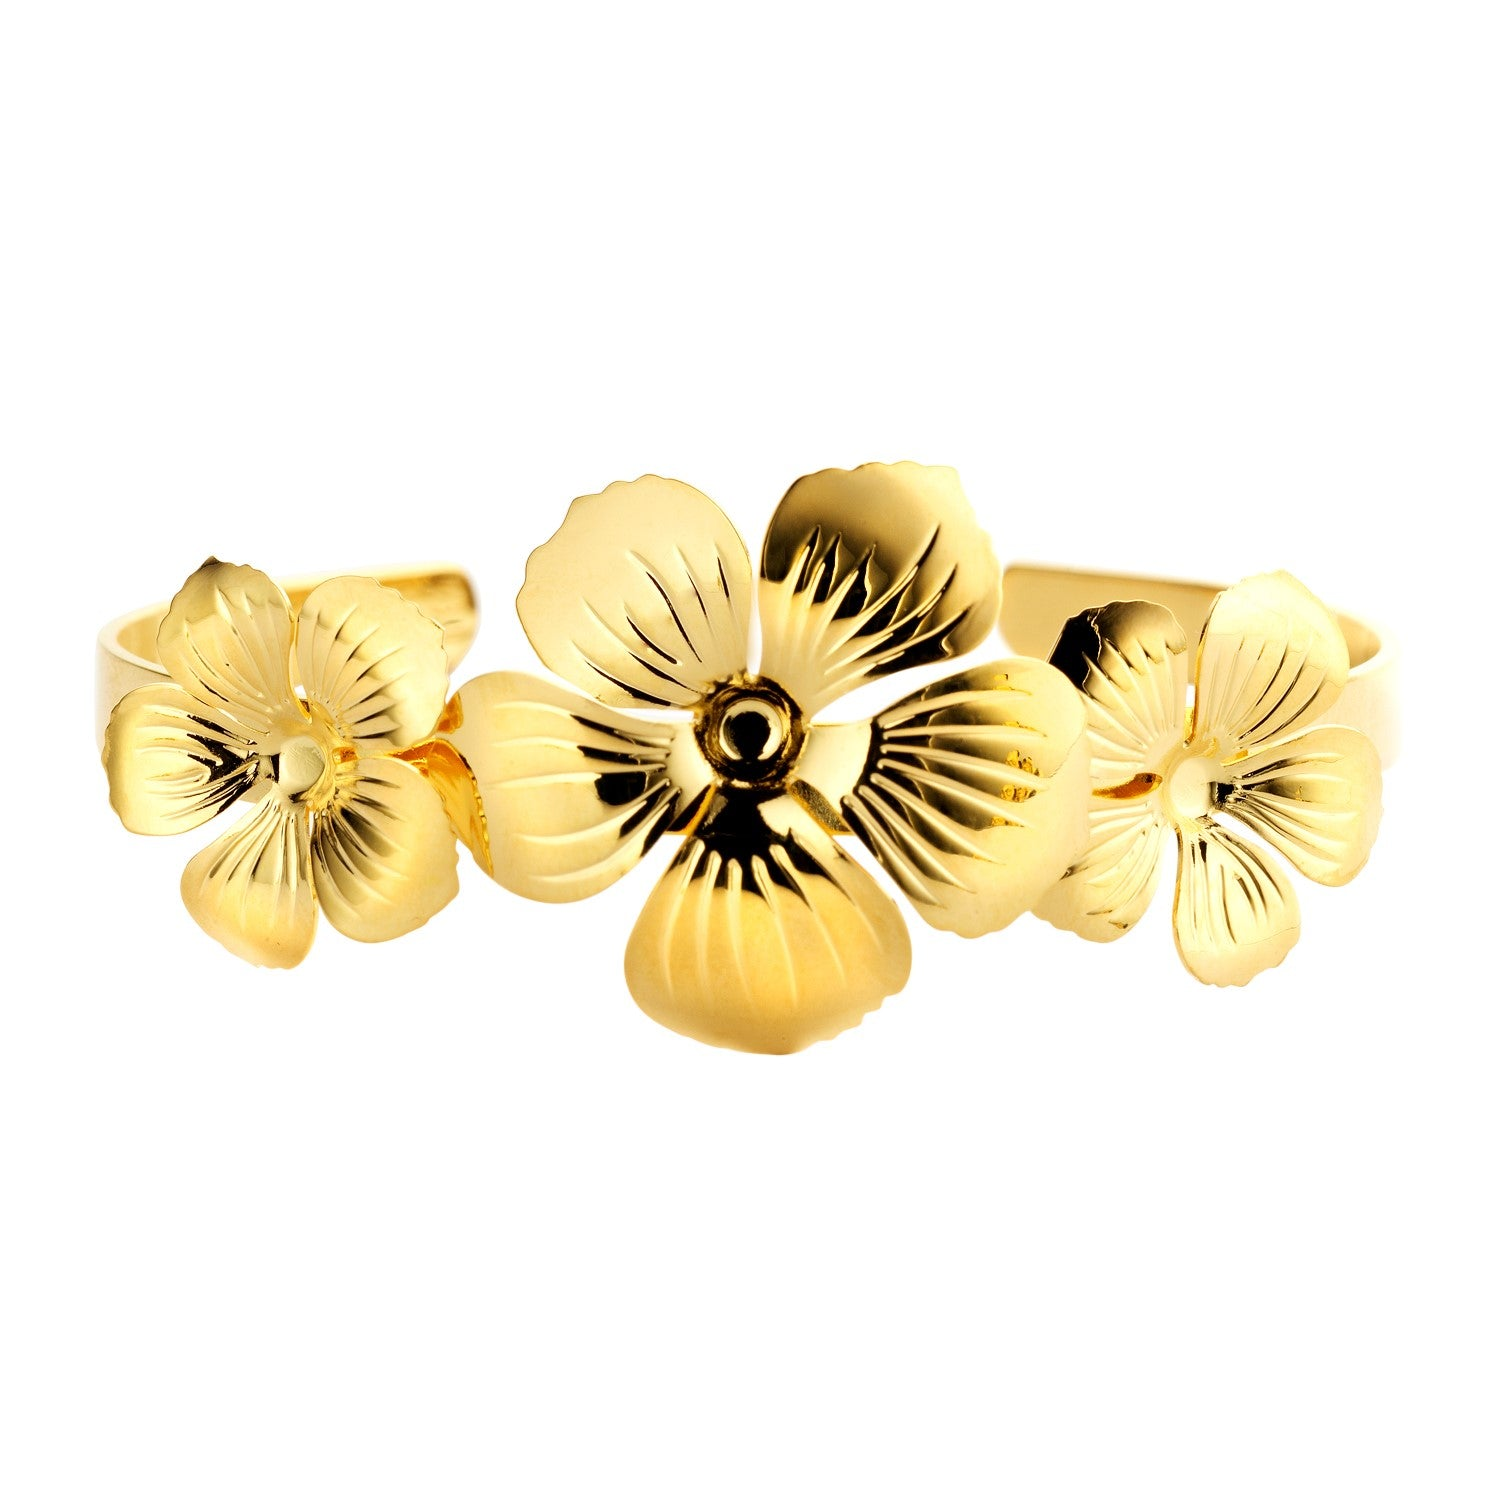 PRE-ORDER Floral cuff gold earrings - Souvenirs de Pomme